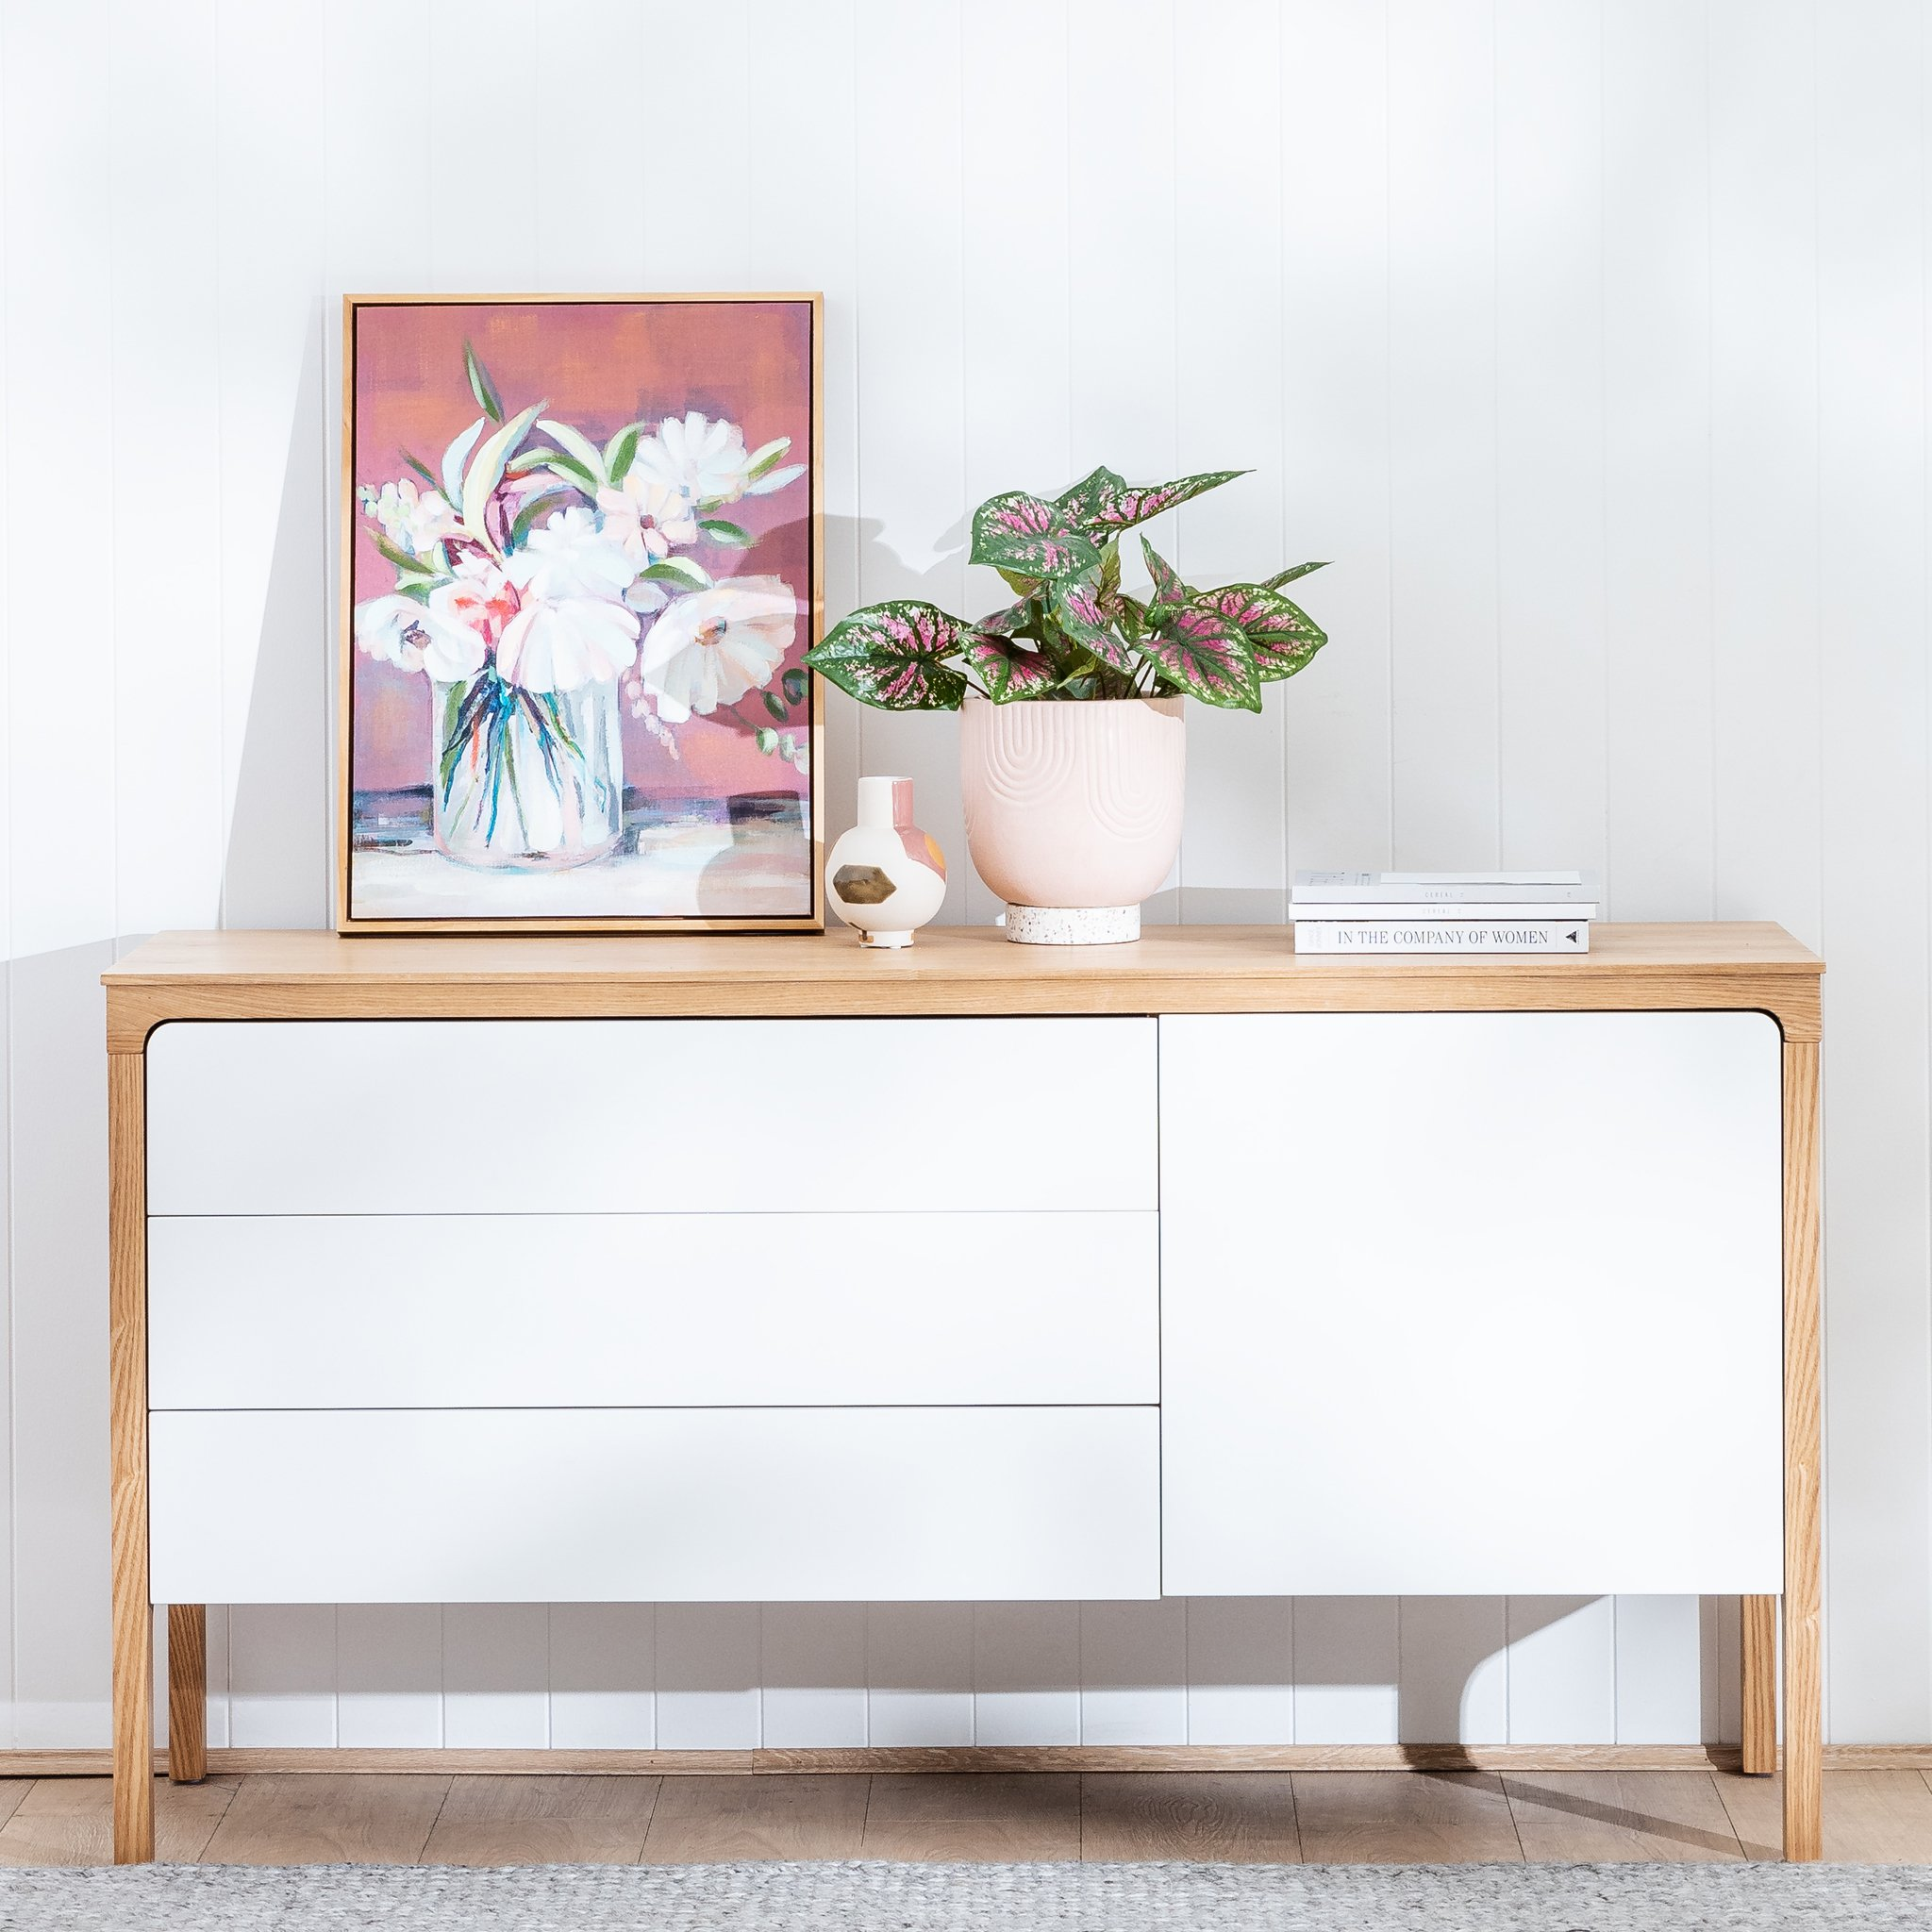 https://www.interiorsecrets.com.au/collections/buffets-sideboards/products/maribel-1-9m-wooden-sideboard-black-oak